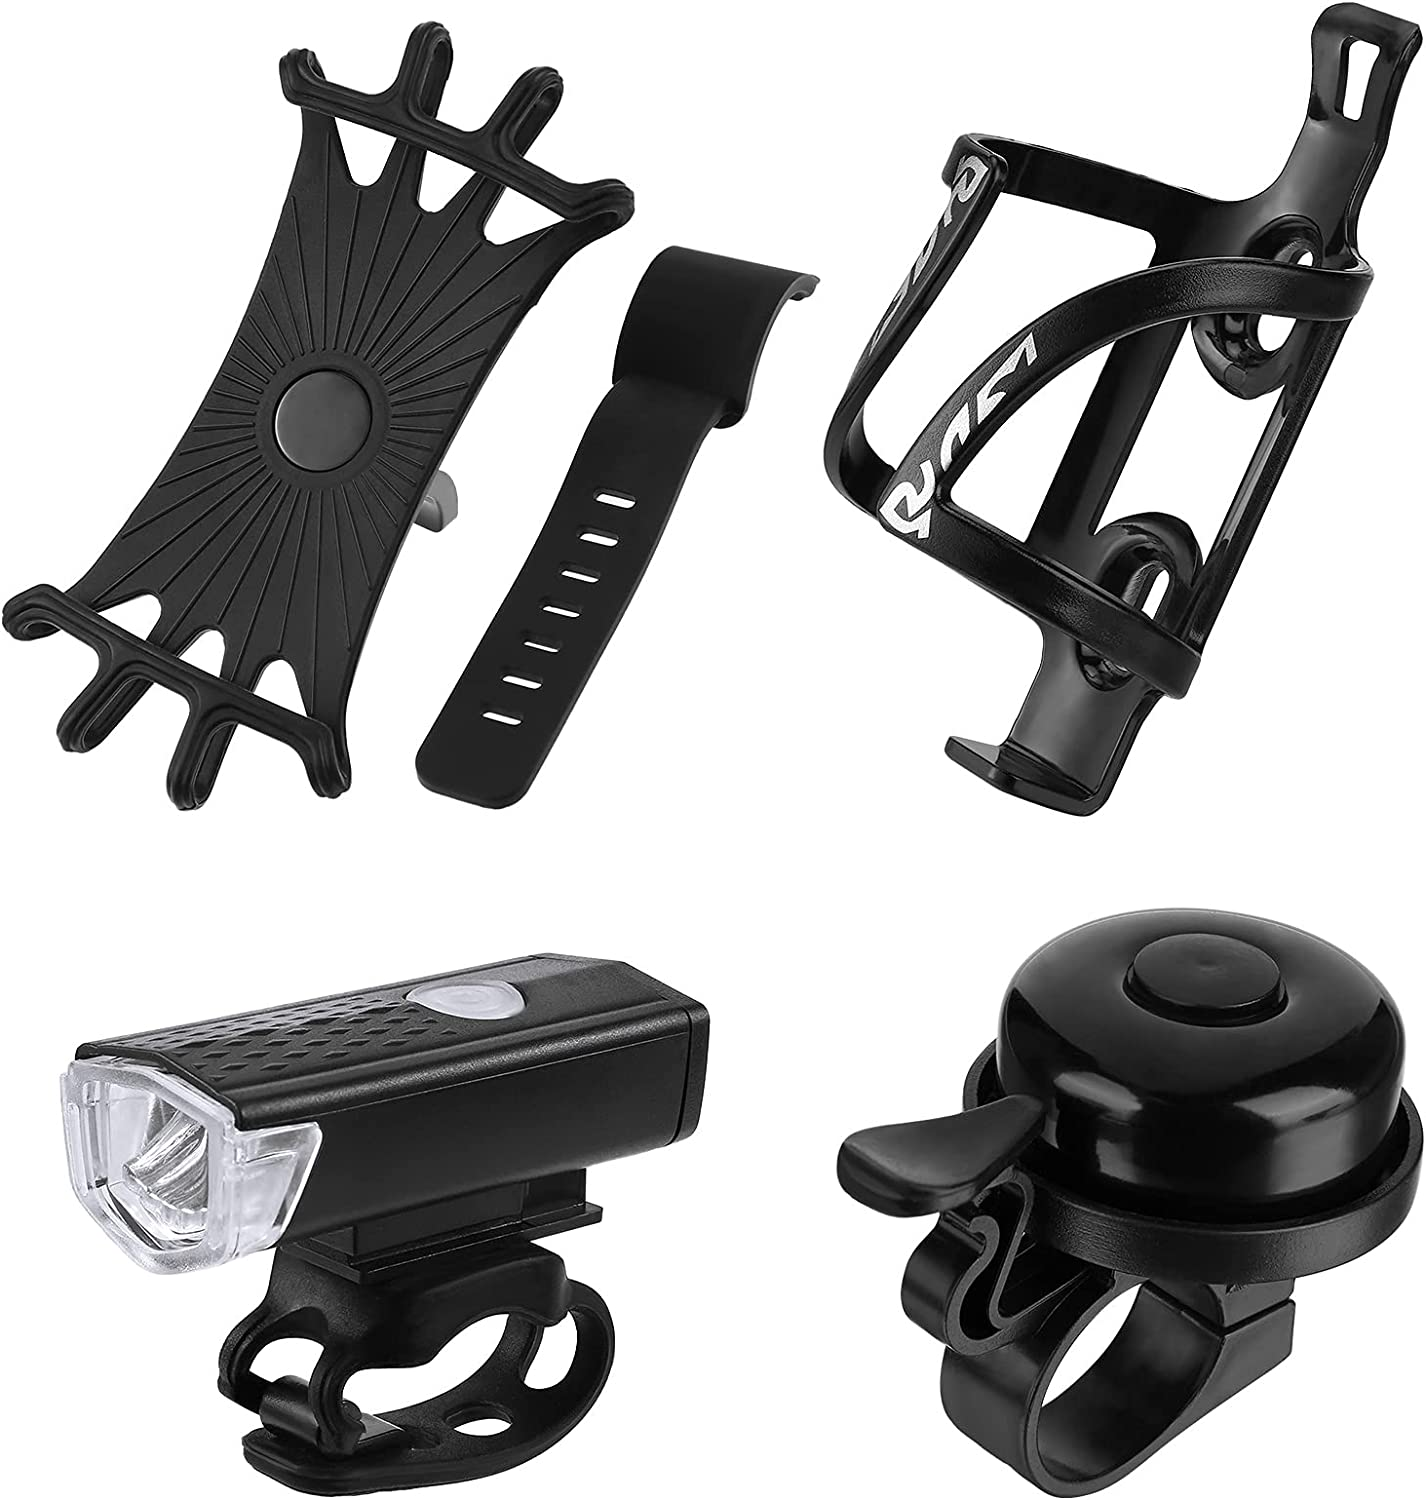 4 Pieces Bicycle Accessories Set USB Rechargeable Bike shop Light Brand new Ex